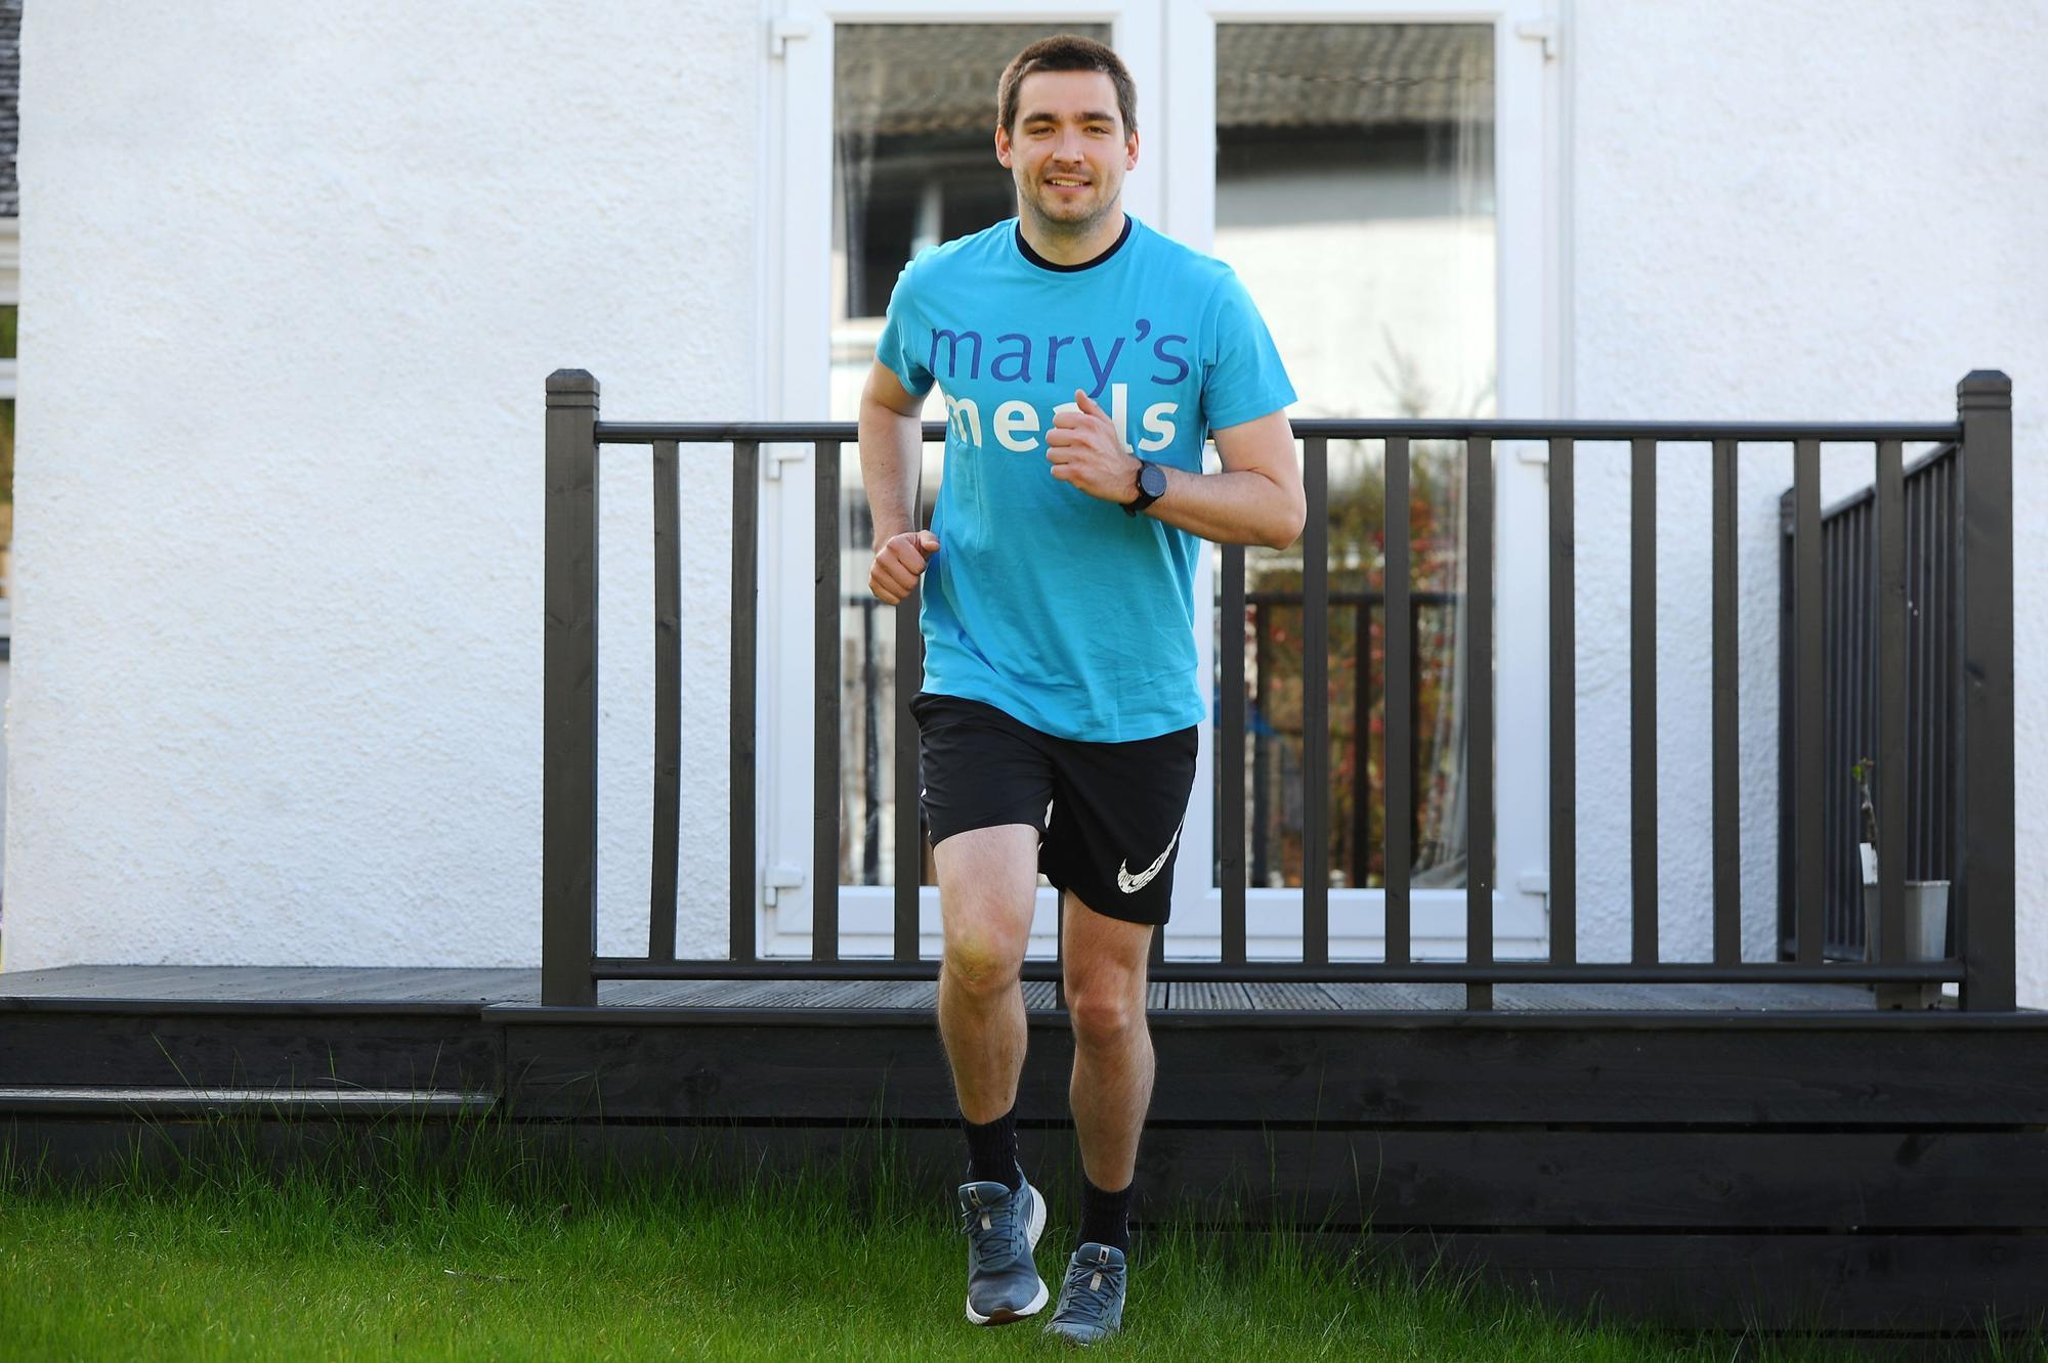 Wallacestone man ran four miles every four hours over weekend to support Mary's Meals